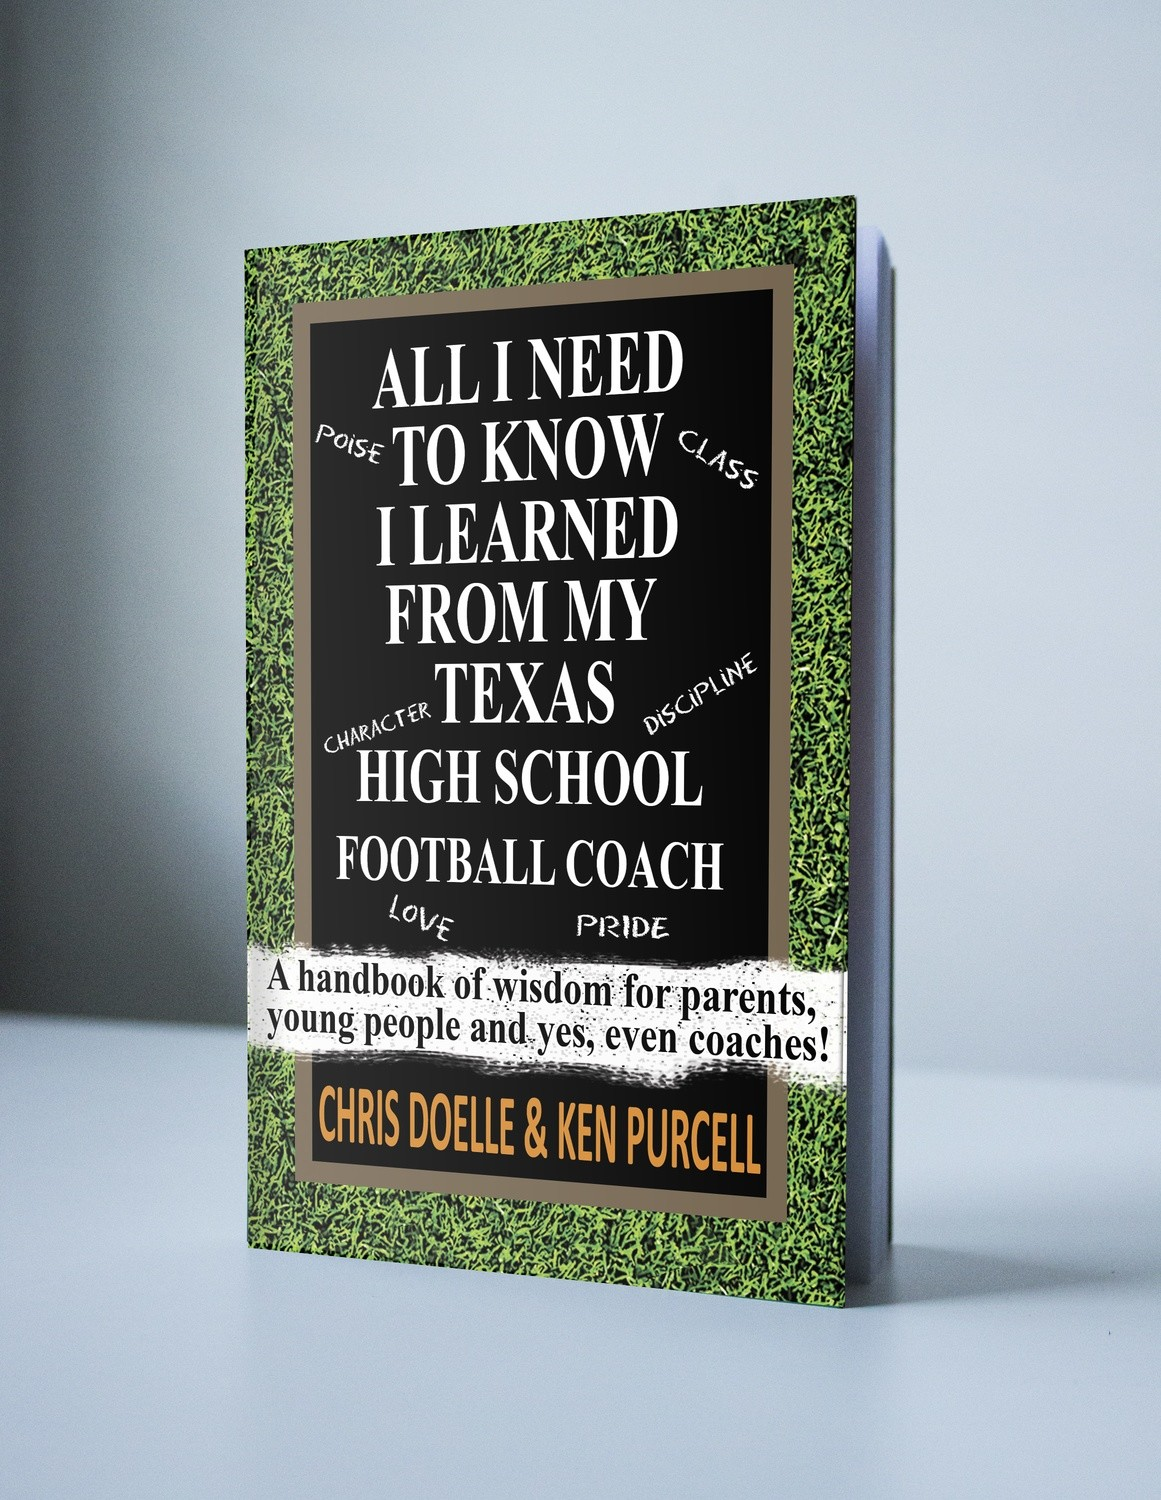 ALL I NEED TO KNOW I LEARNED FROM MY TEXAS HIGH SCHOOL FOOTBALL COACH